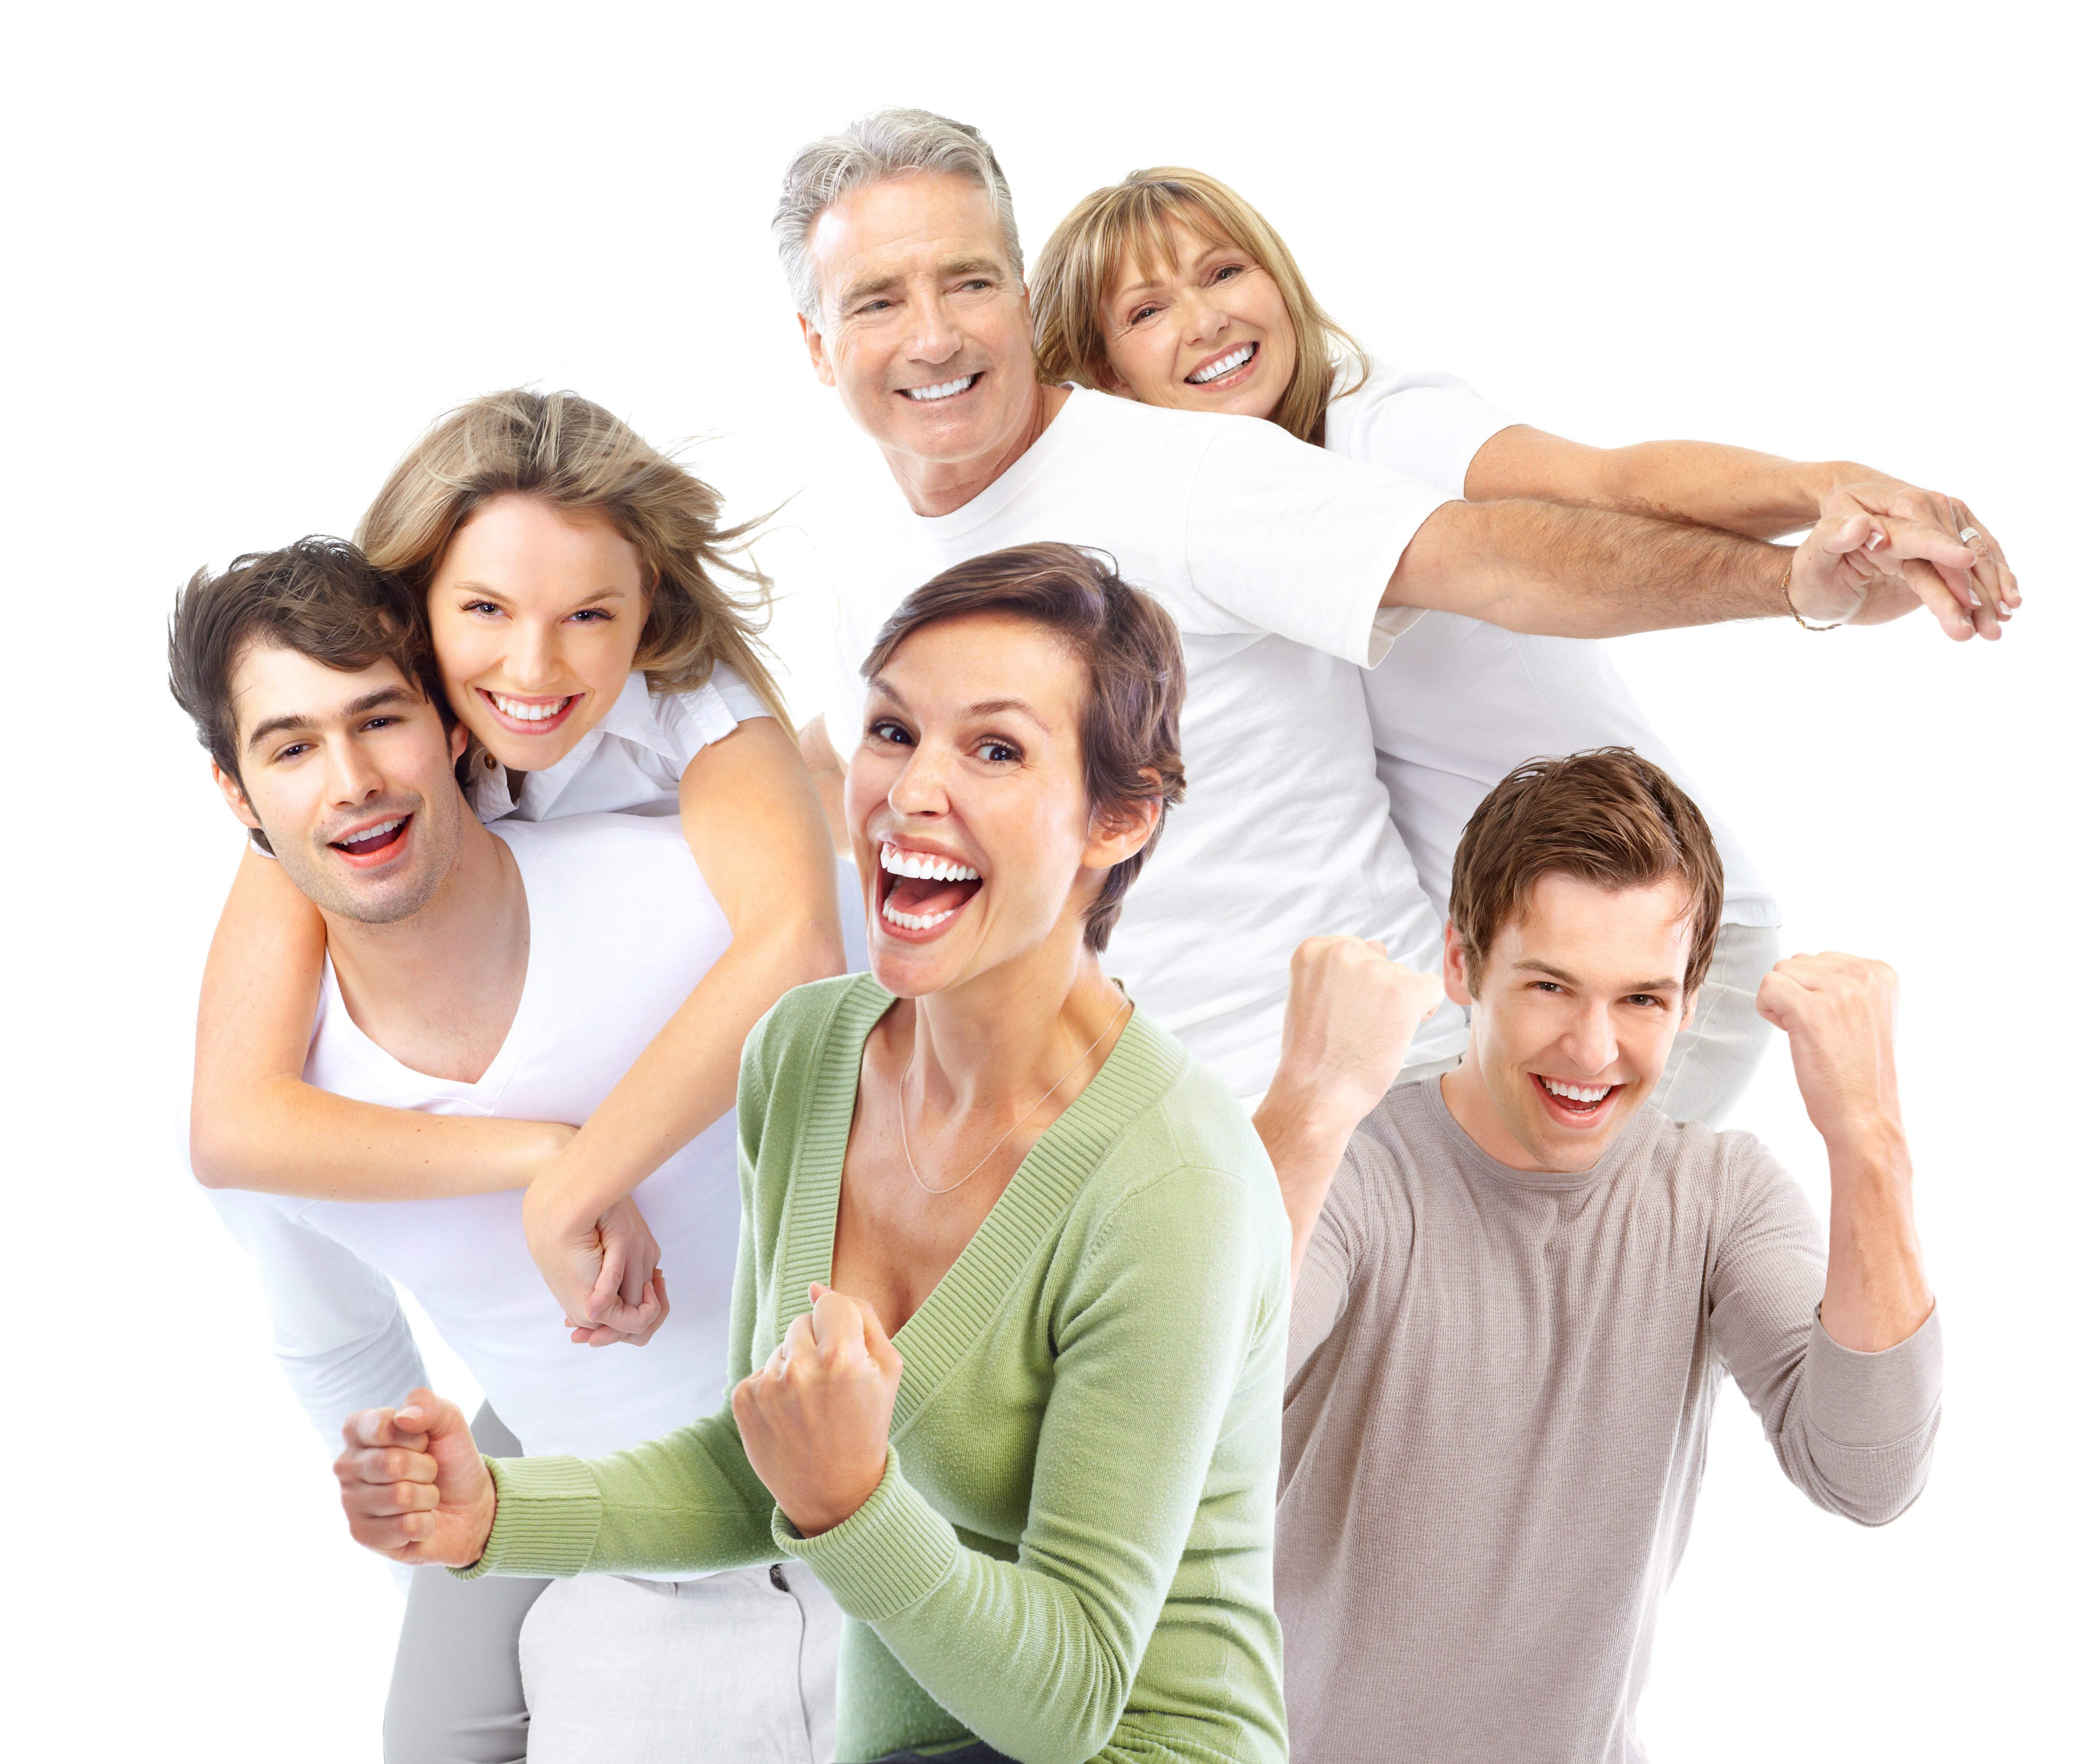 15 Healthy People Stock Photo Images